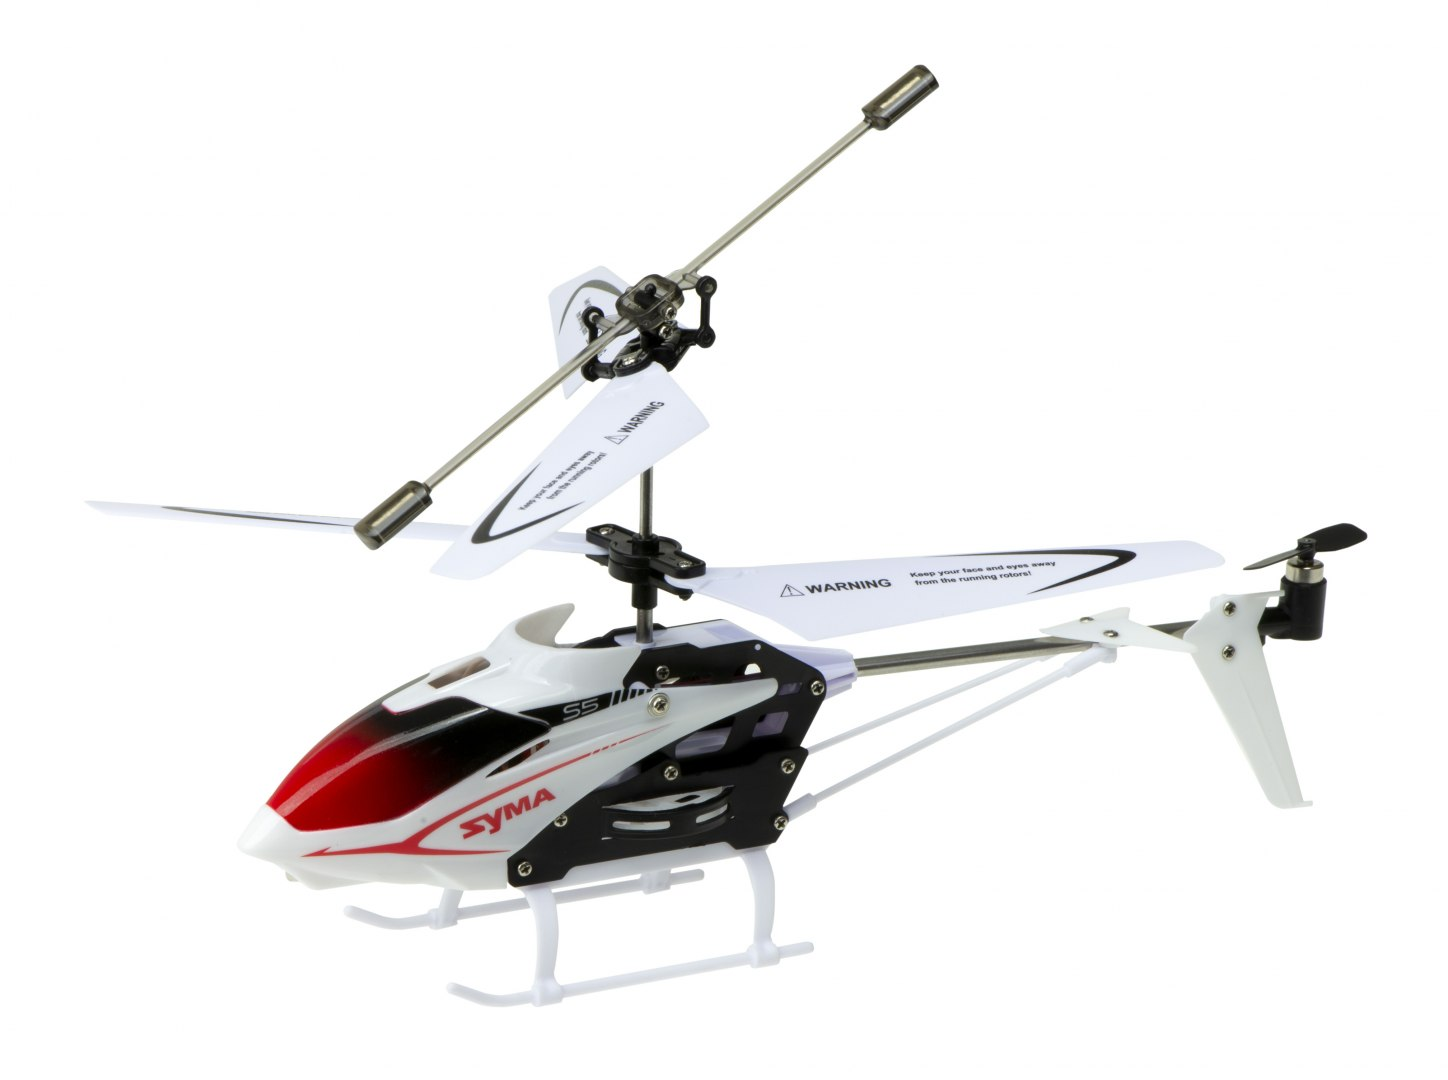 Image of Helikopter RC SYMA S5 3CH biały